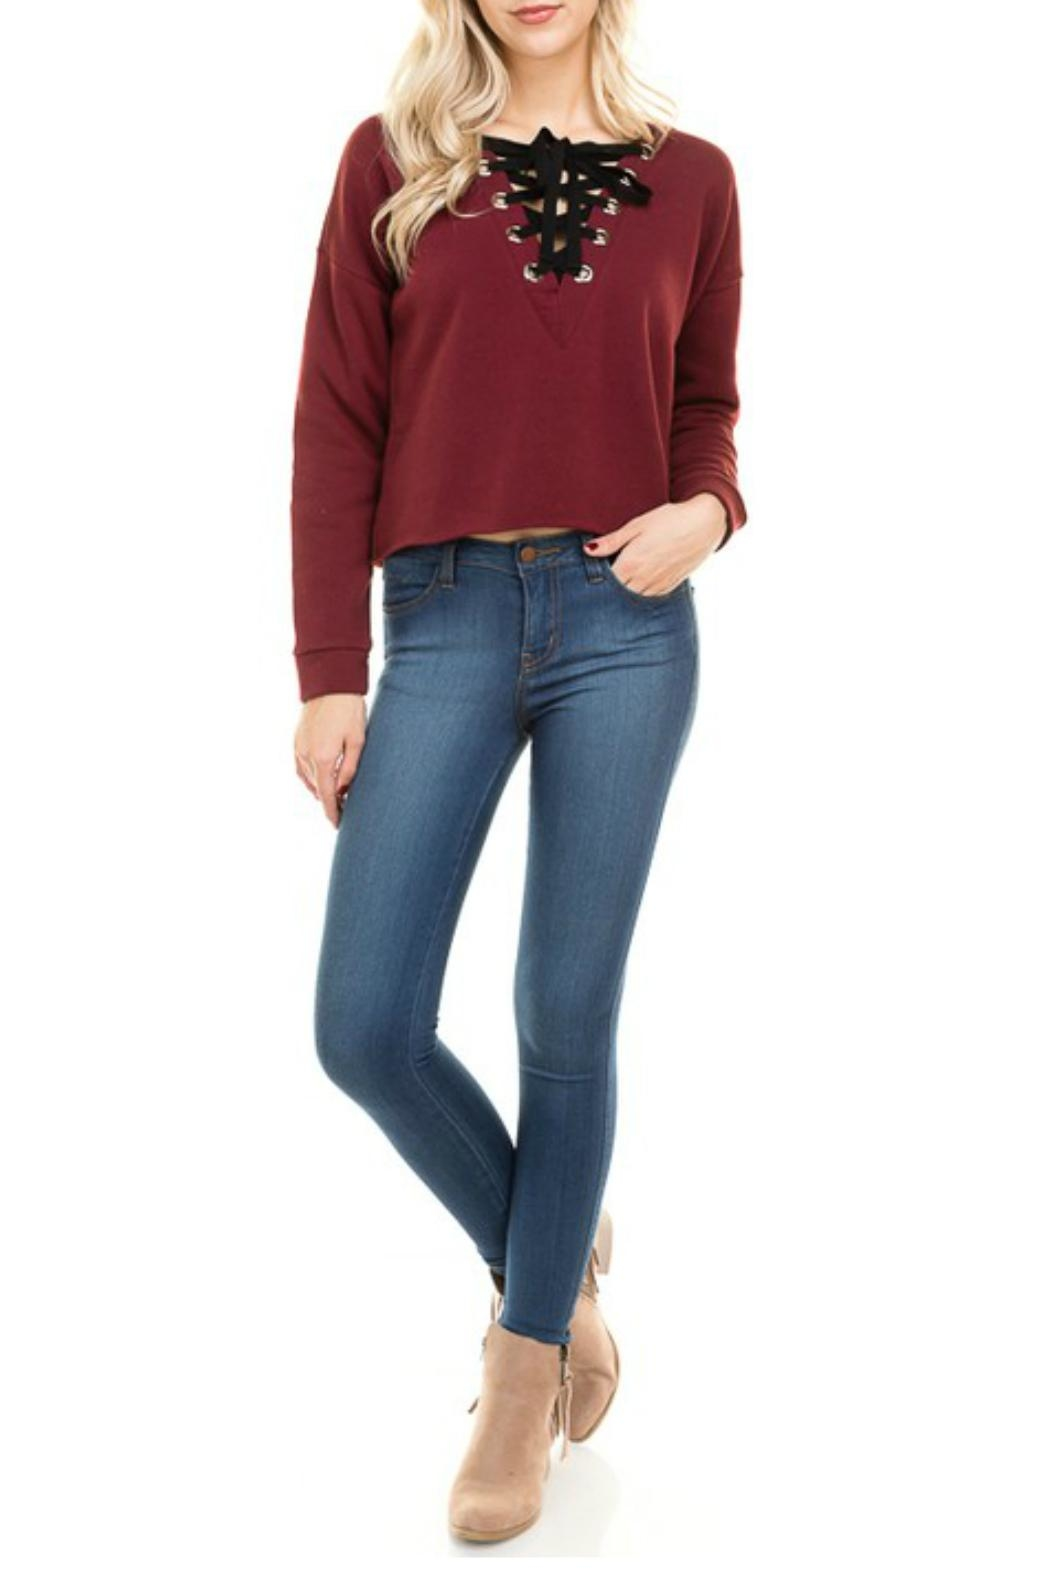 Minx Burgundy Laceup Sweater - Front Full Image